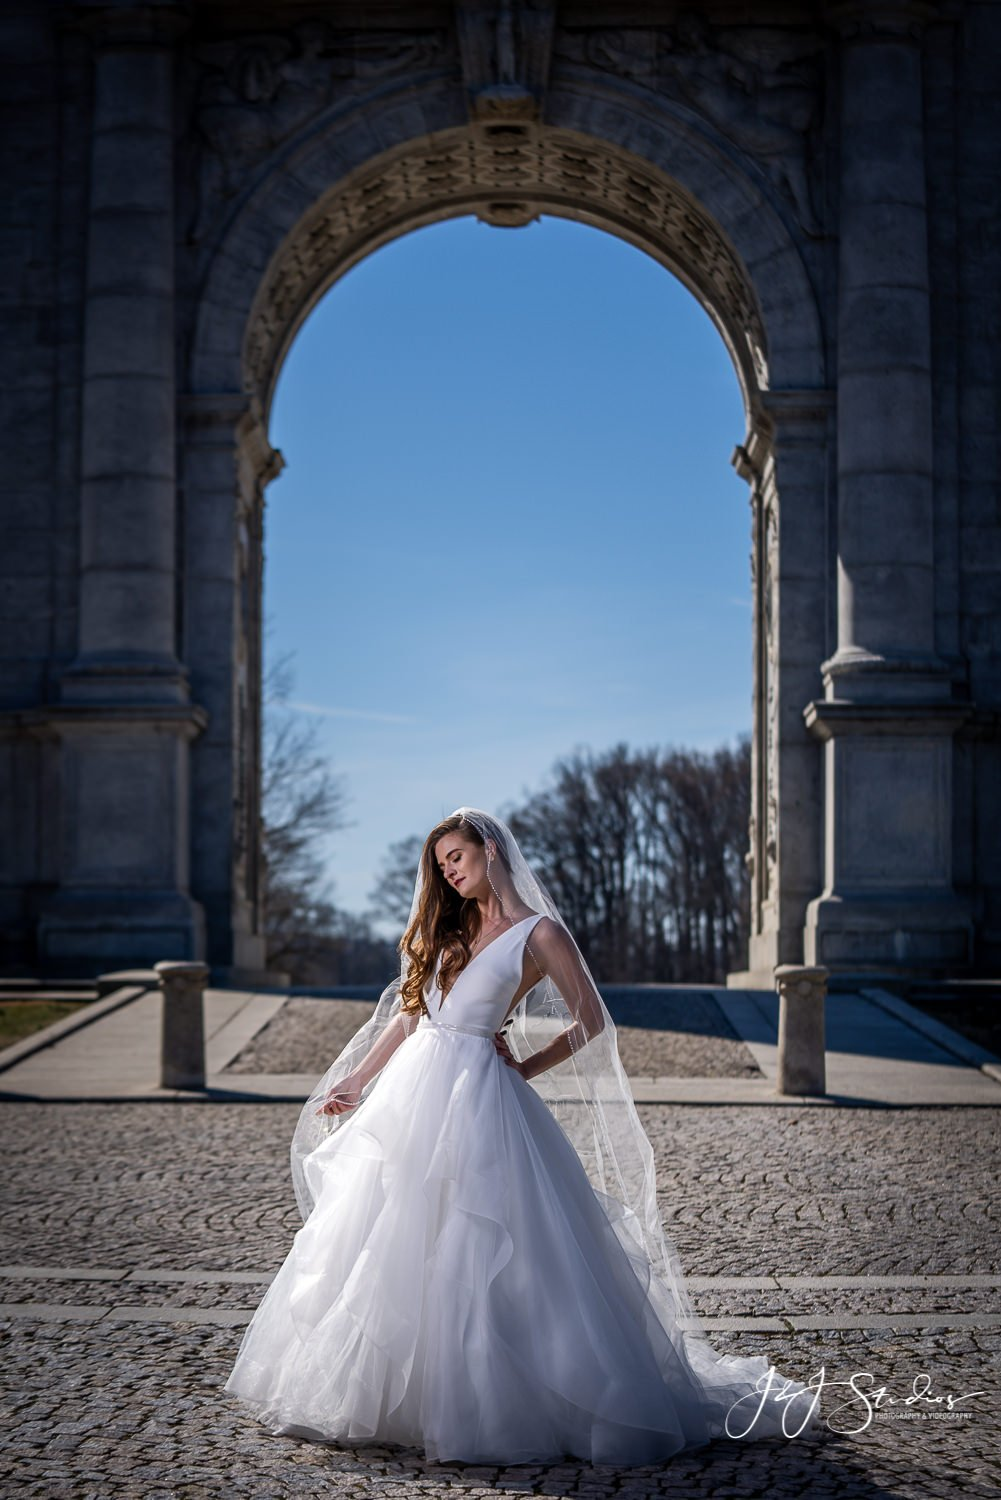 best bridal portrait photographer